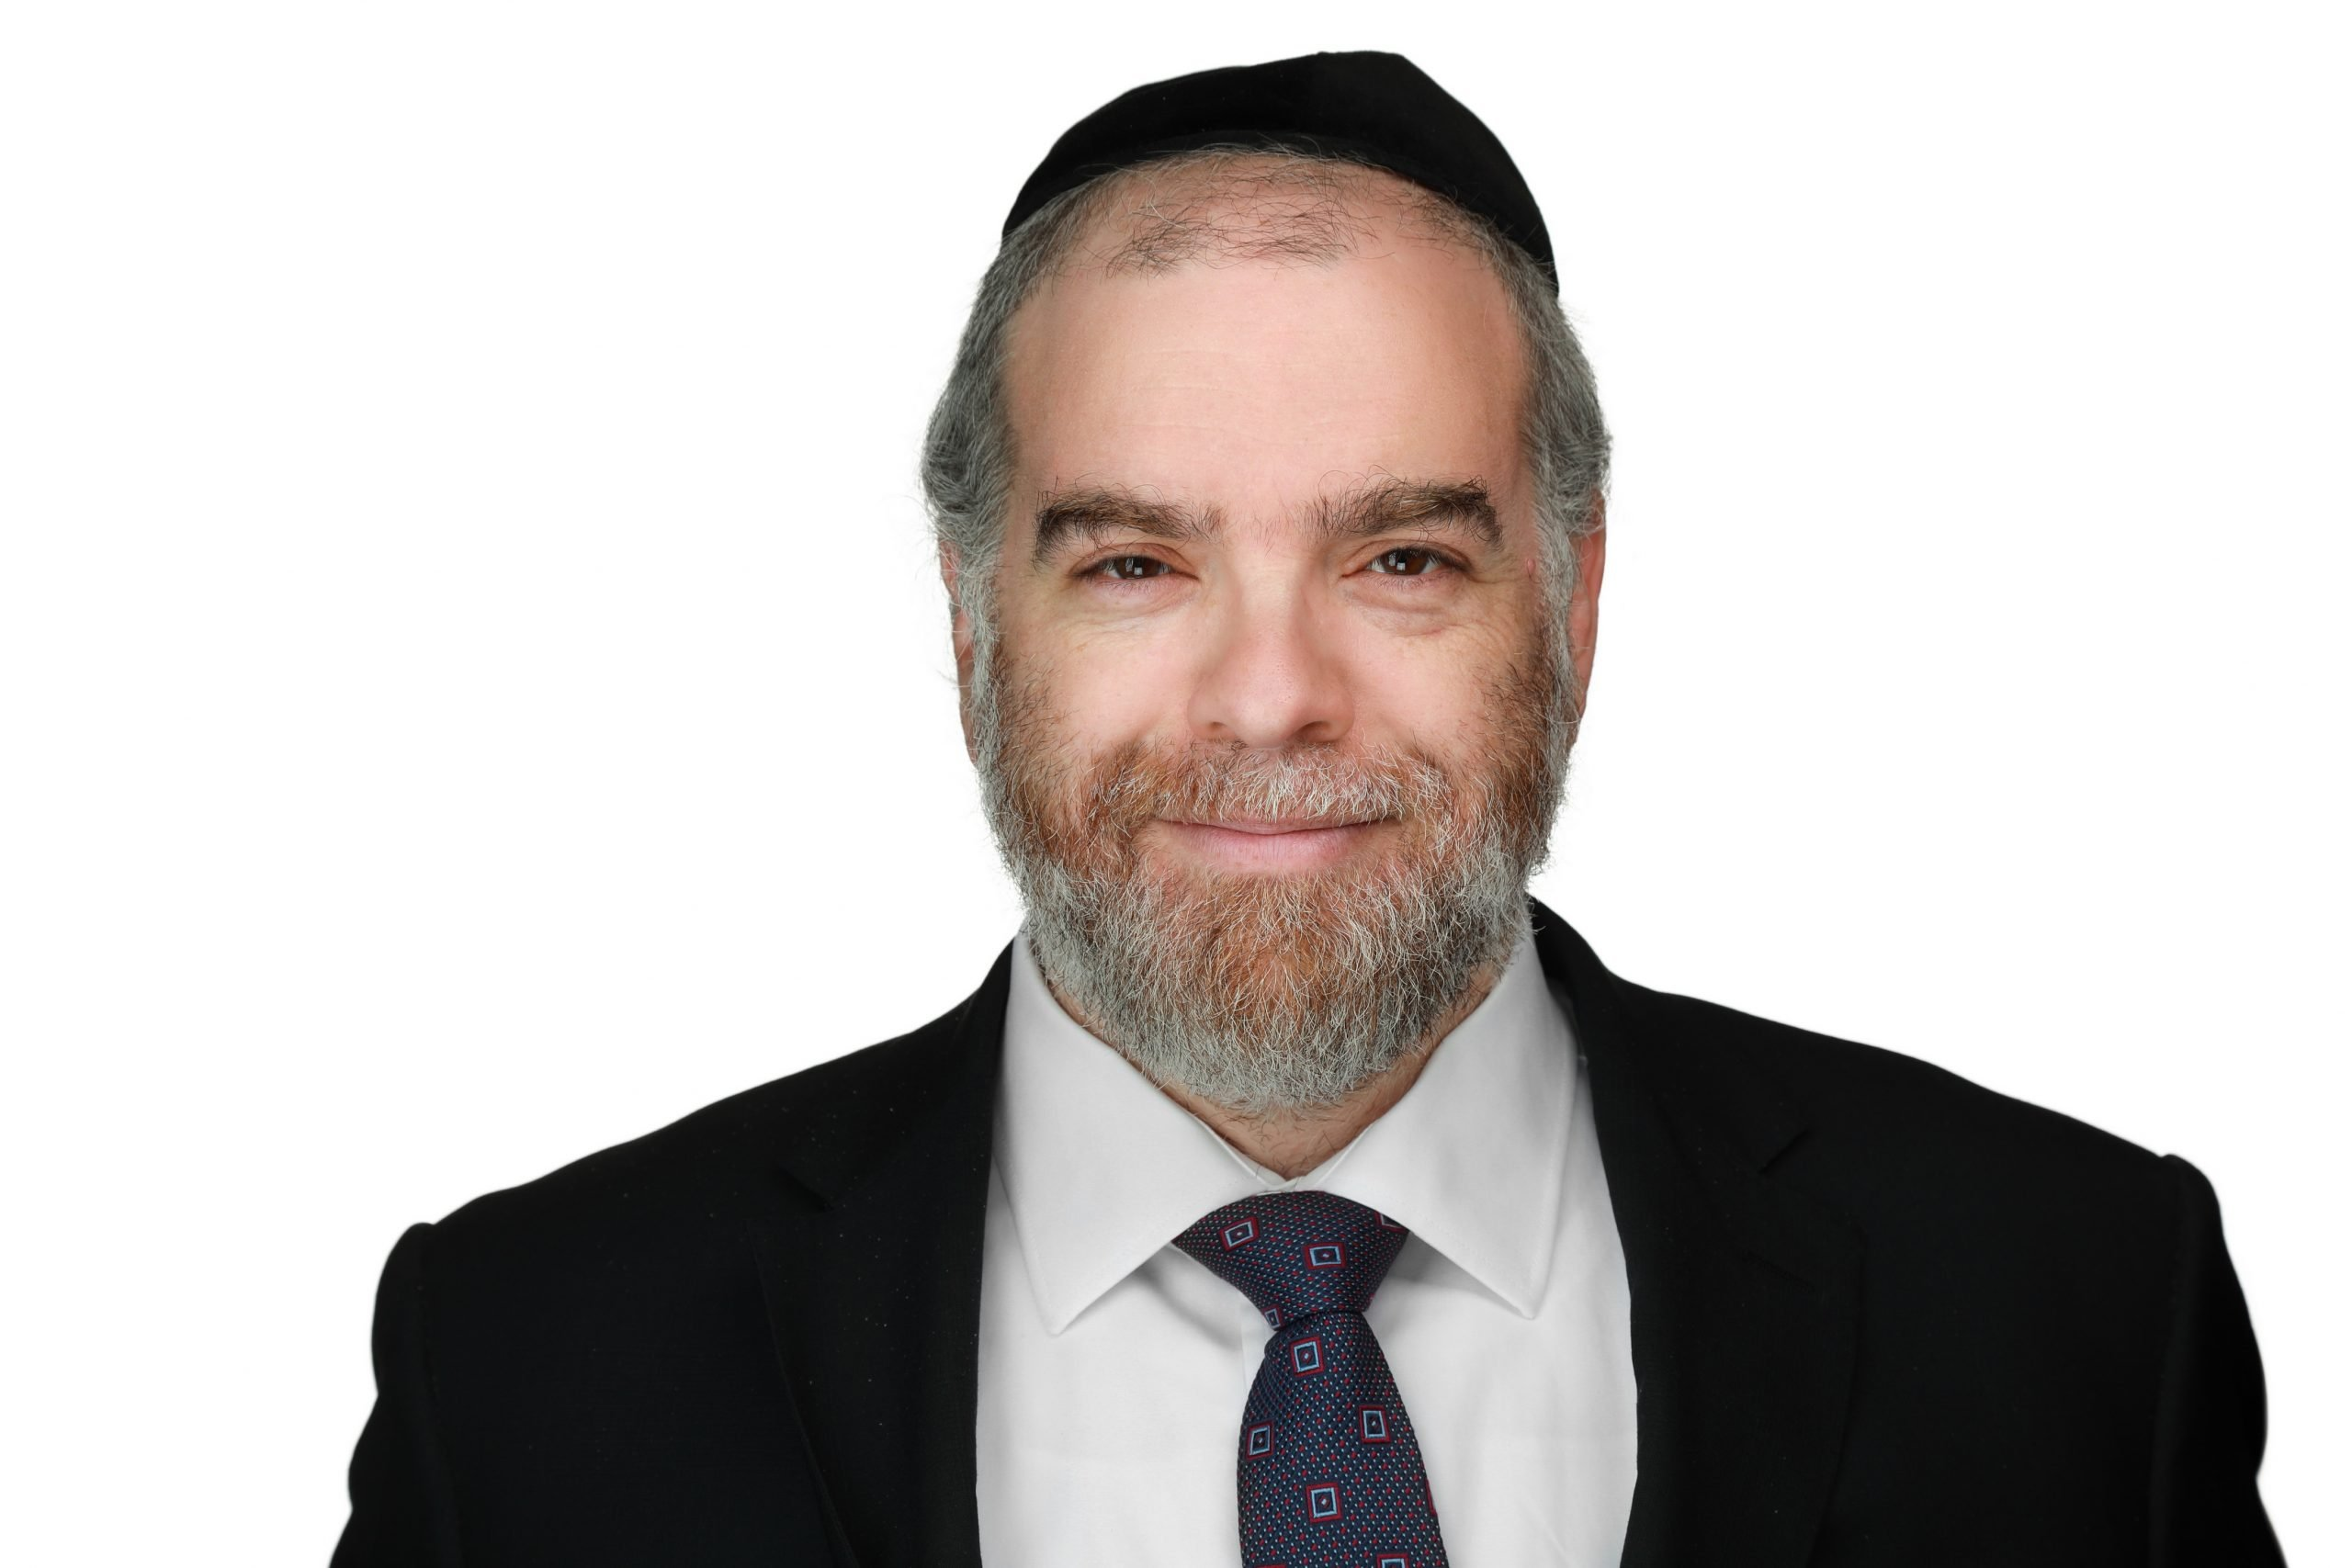 Rabbi Chaim Schwartz